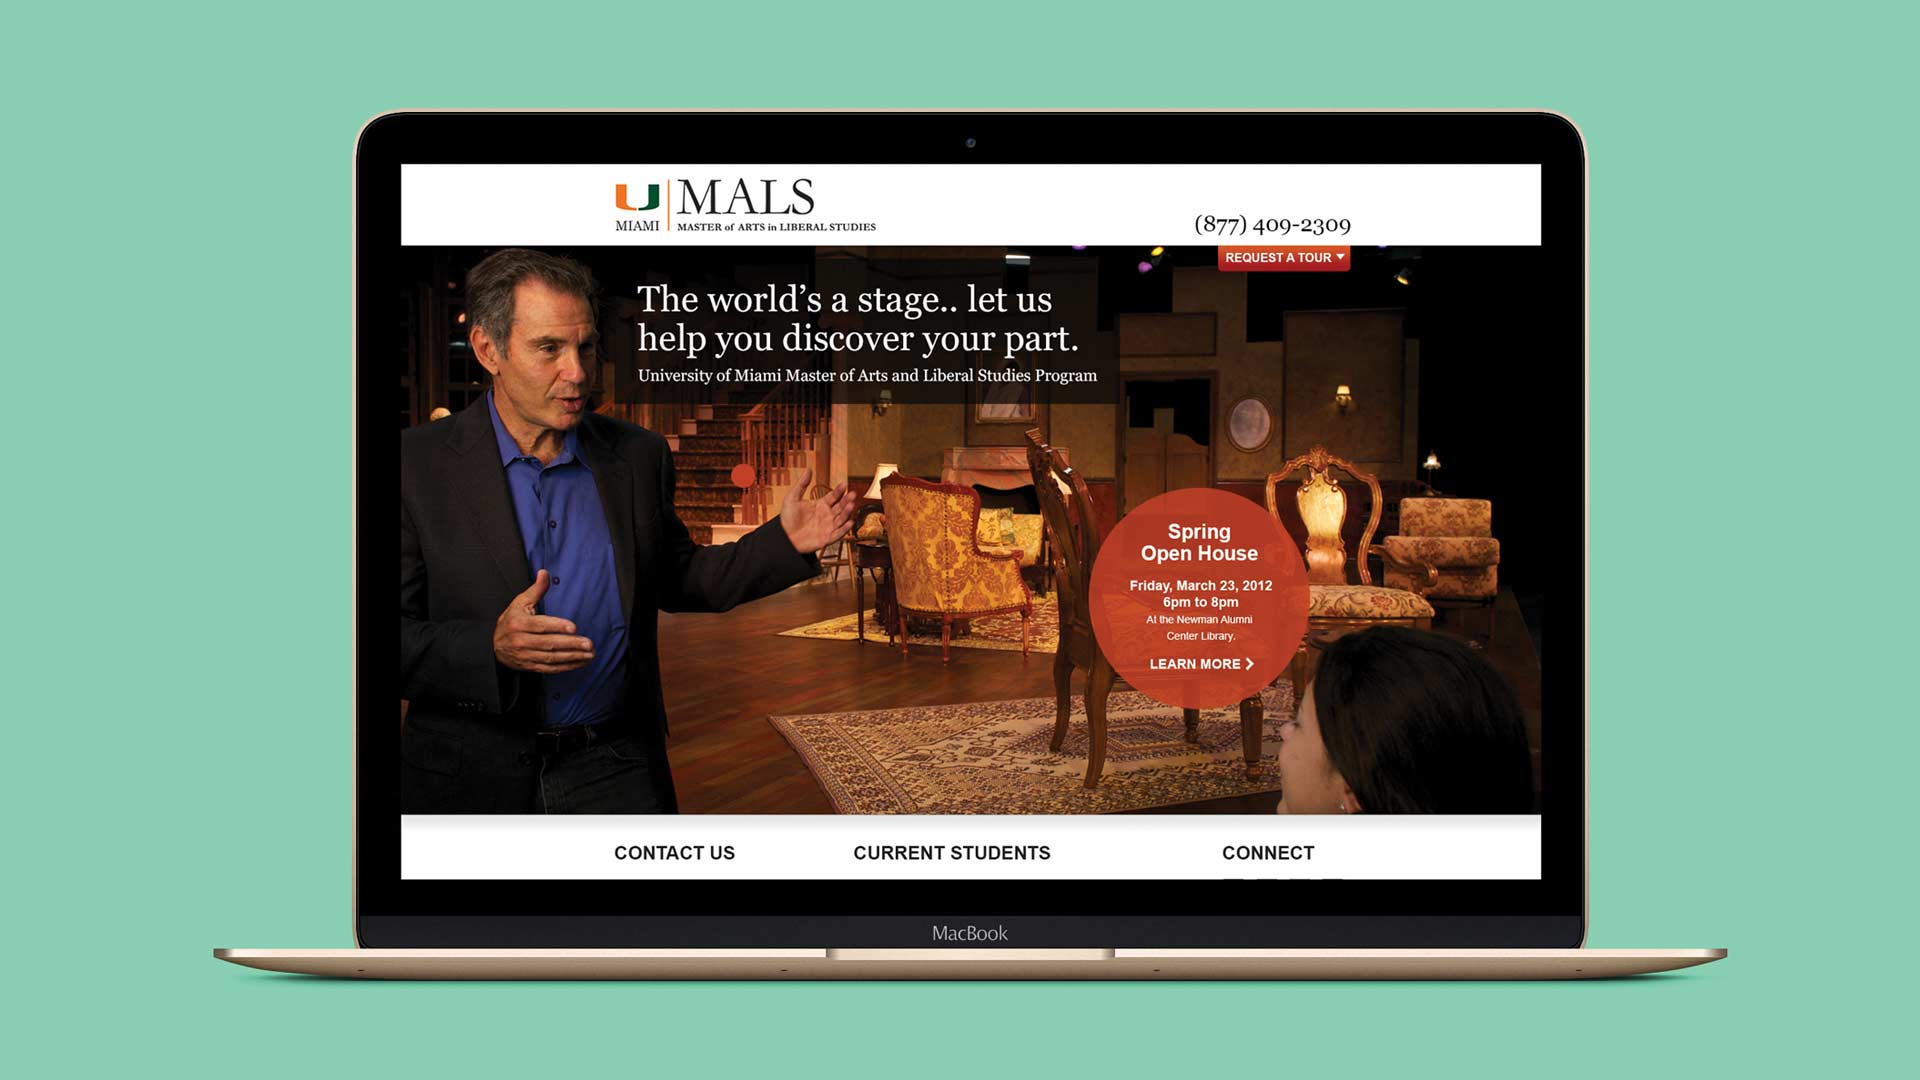 University of Miami MALS Website Design On Laptop Screen